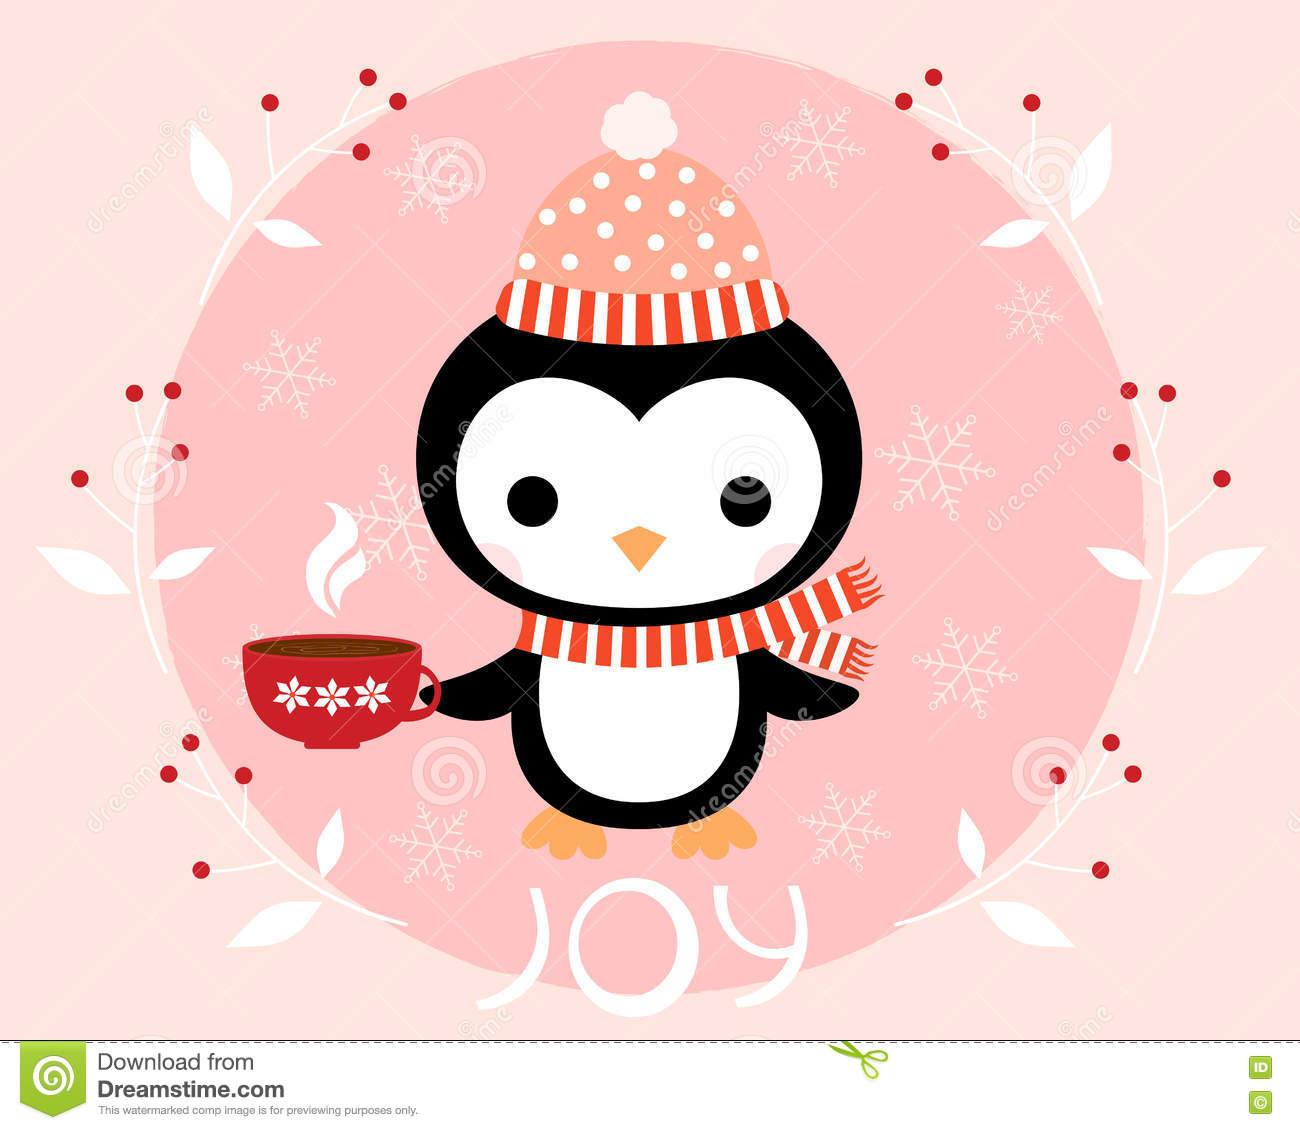 e68bf5d16ebb1 Christmas Greeting Card With Cute Penguin Stock Vector ...